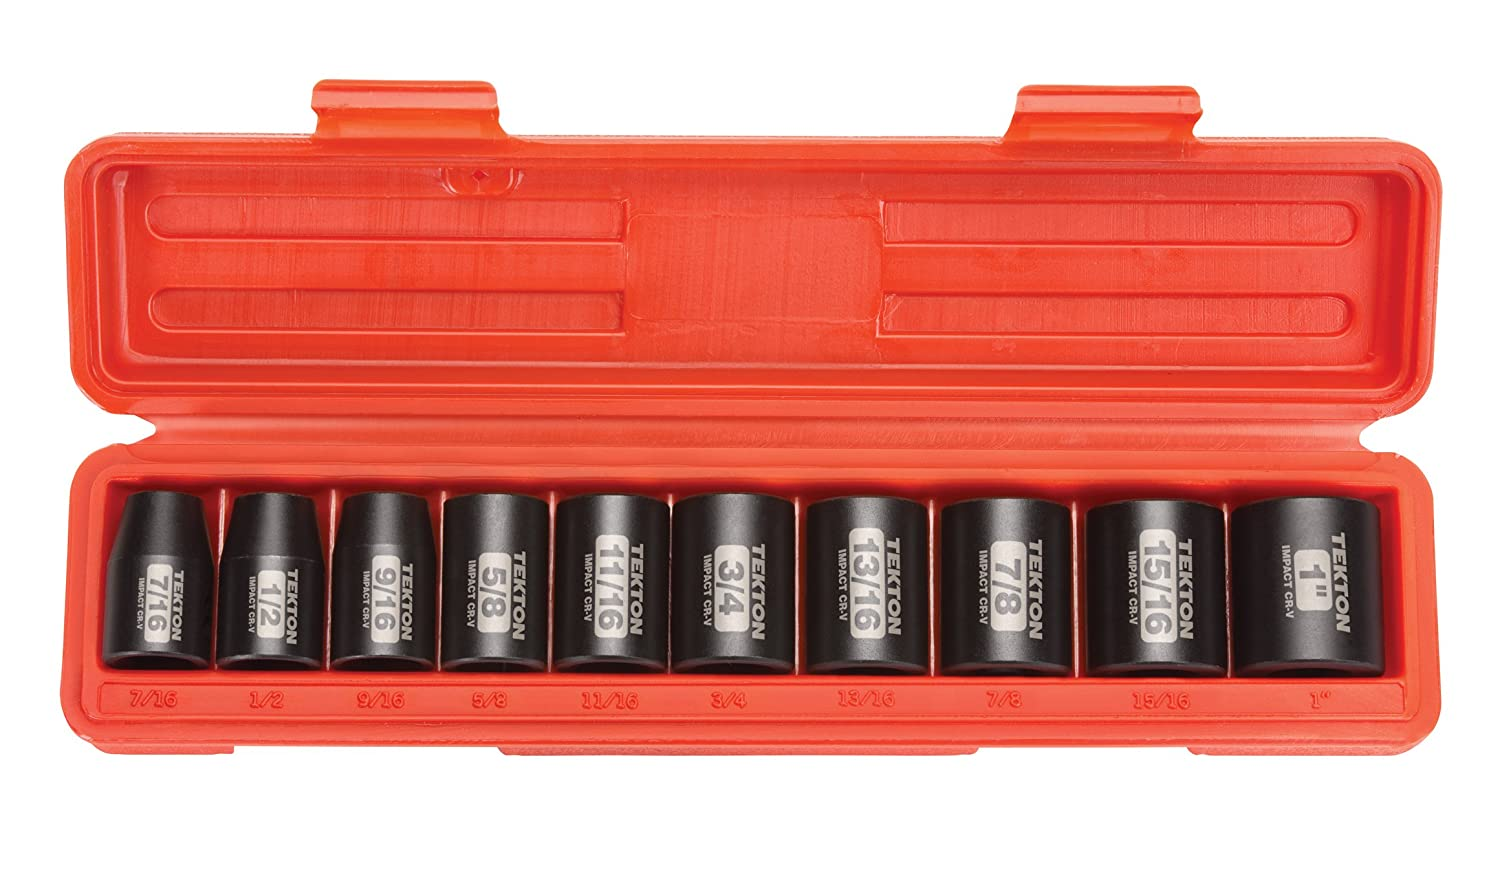 TEKTON 4815 1/2-Inch Drive Shallow Impact Socket Set, Metric, Cr-V, 6-Point, 11 mm - 24 mm, 10-Sockets